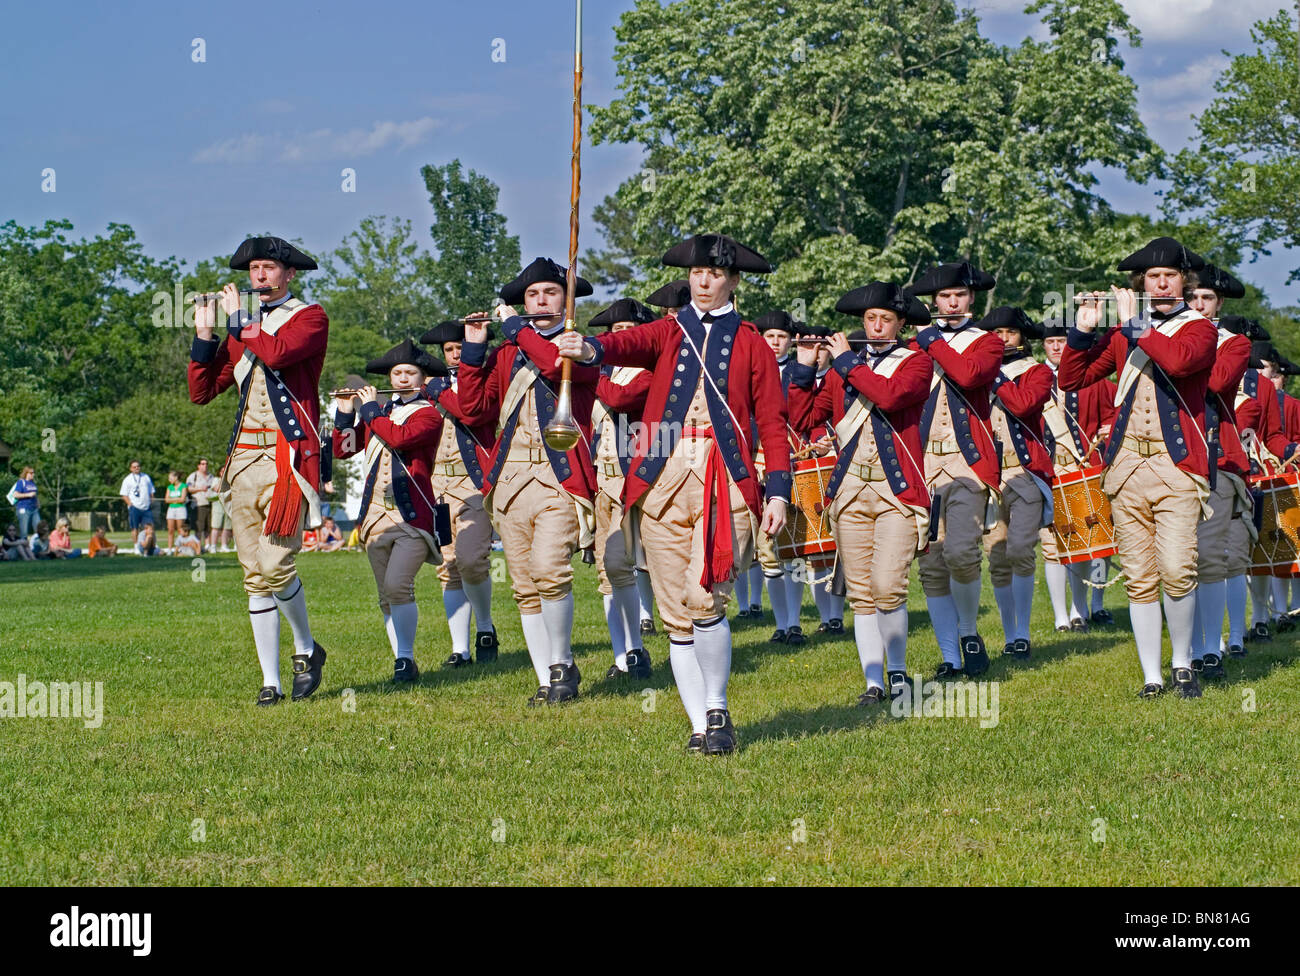 Young military musicians in Revolutionary War uniforms